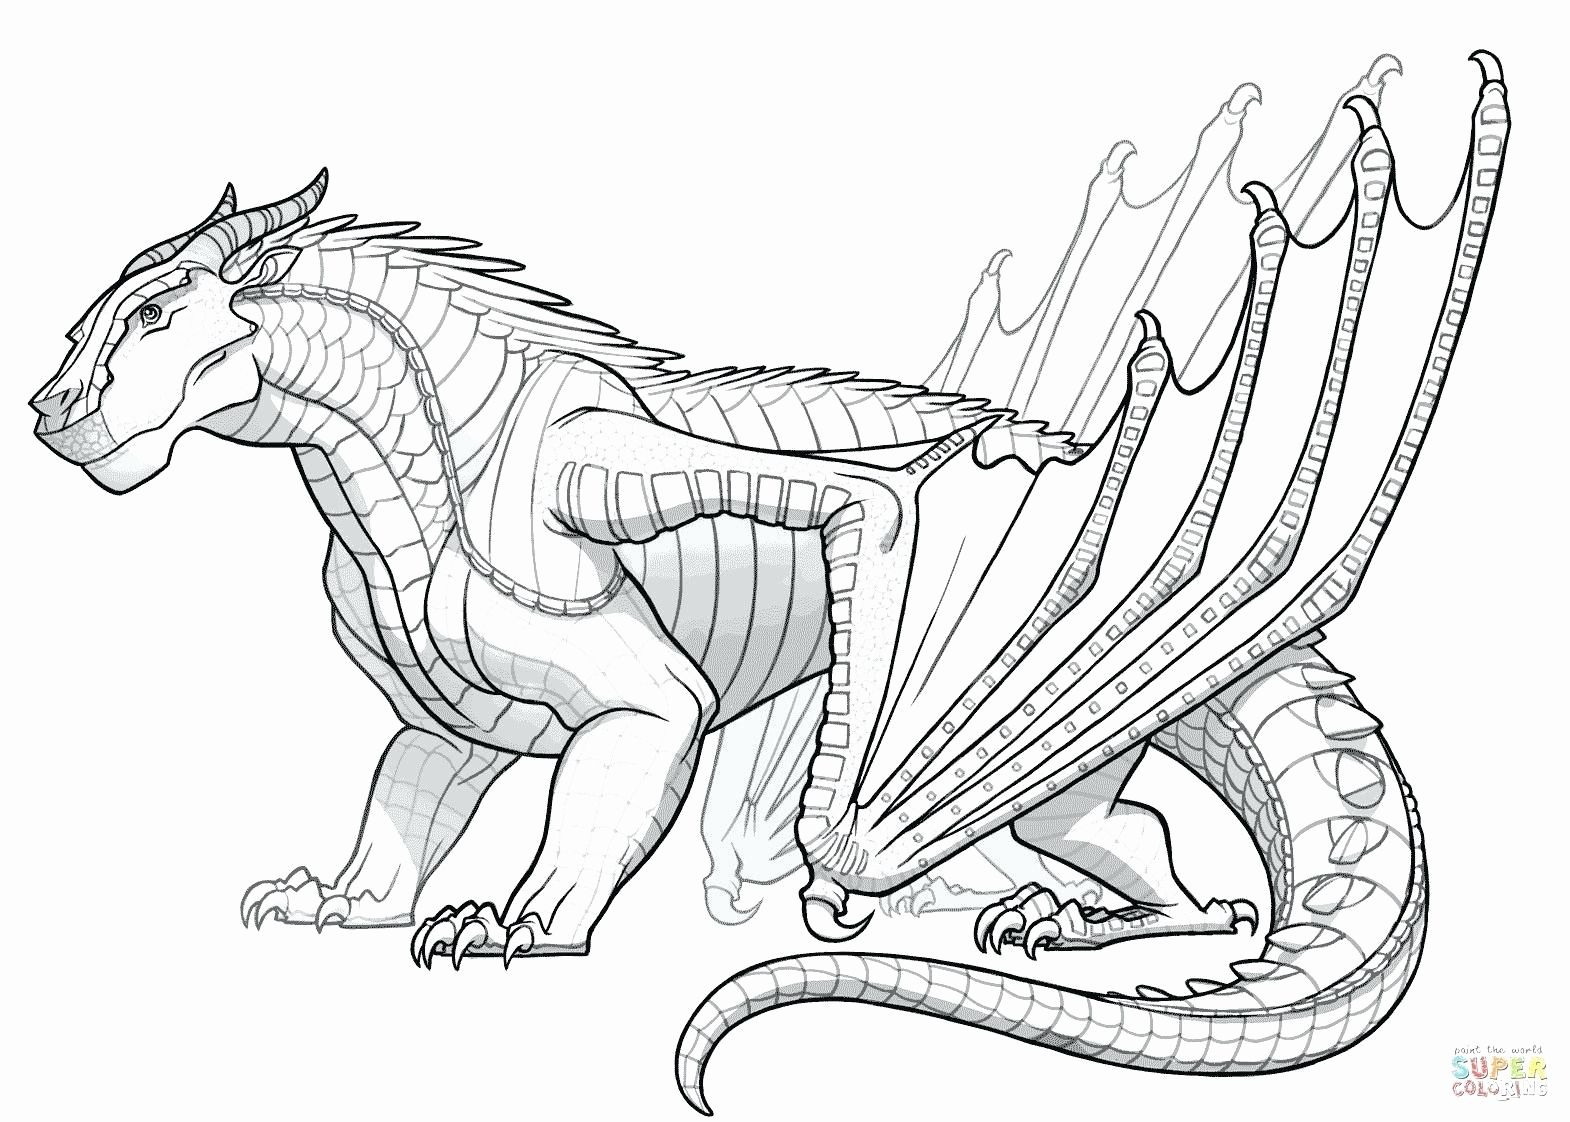 Hard Animal Coloring Pages Adults Fresh Coloring Pictures Of Animal Niagarapaper Zoo Animal Coloring Pages Dragon Coloring Page Pokemon Coloring Pages